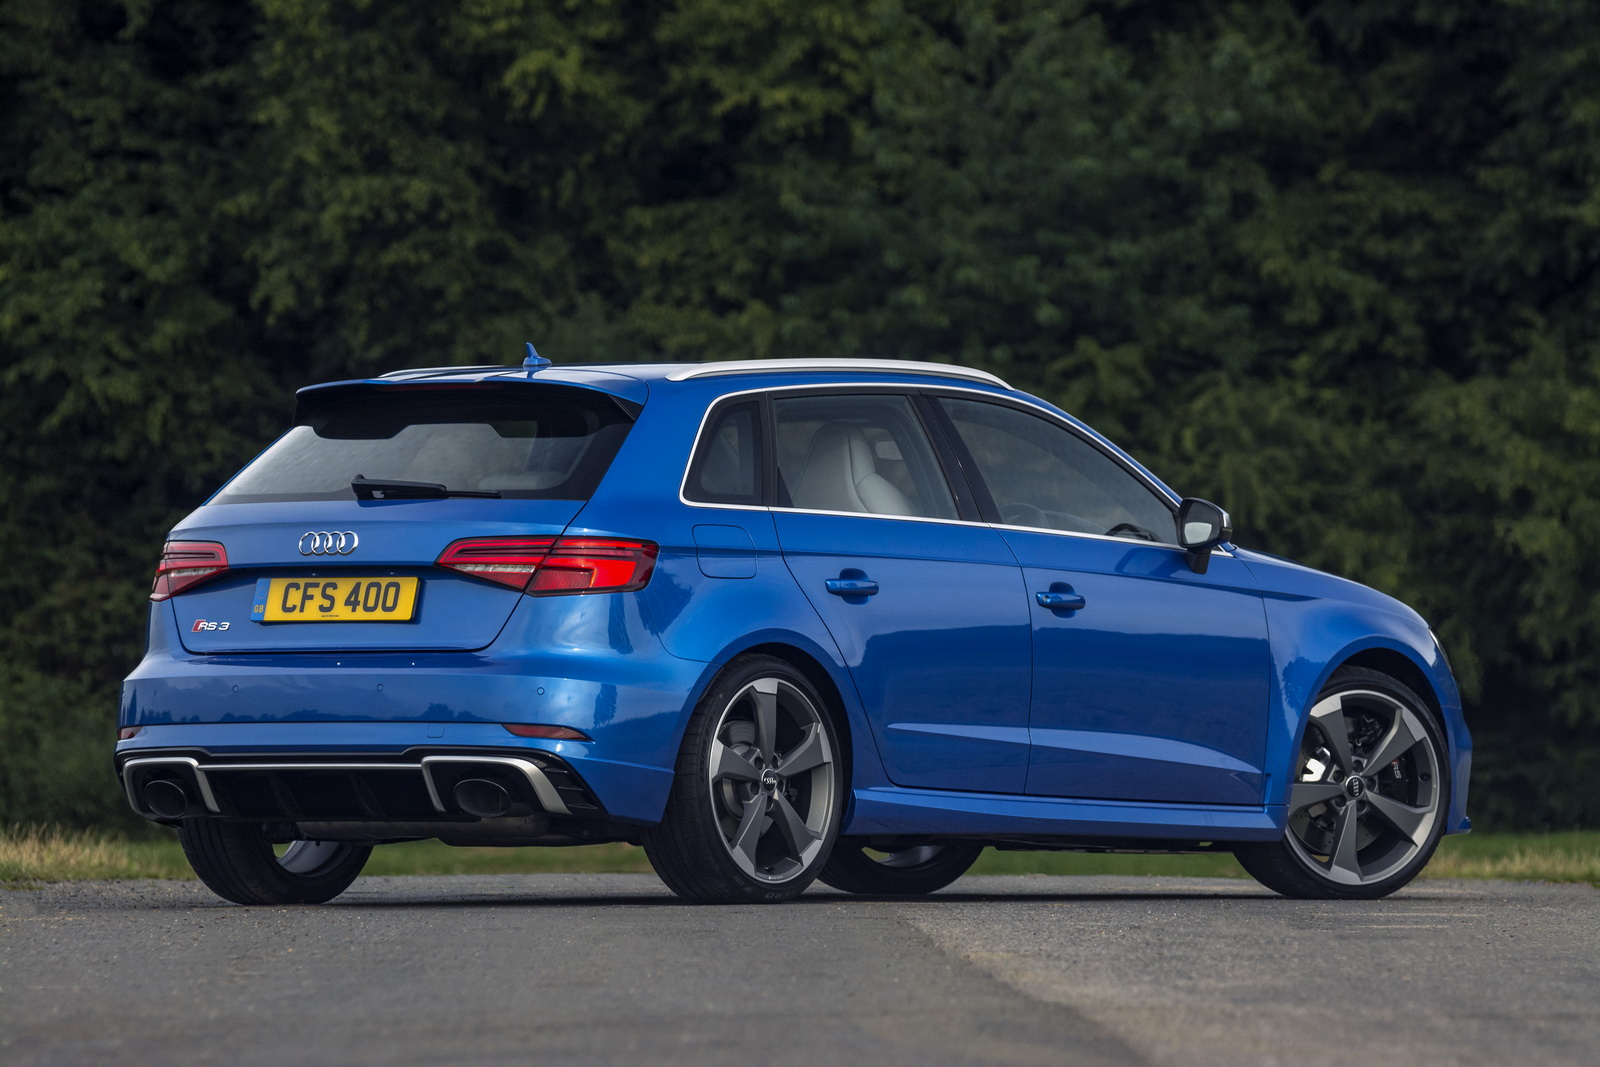 new 400ps audi rs3 arrives in the uk priced from 44 300 otr. Black Bedroom Furniture Sets. Home Design Ideas